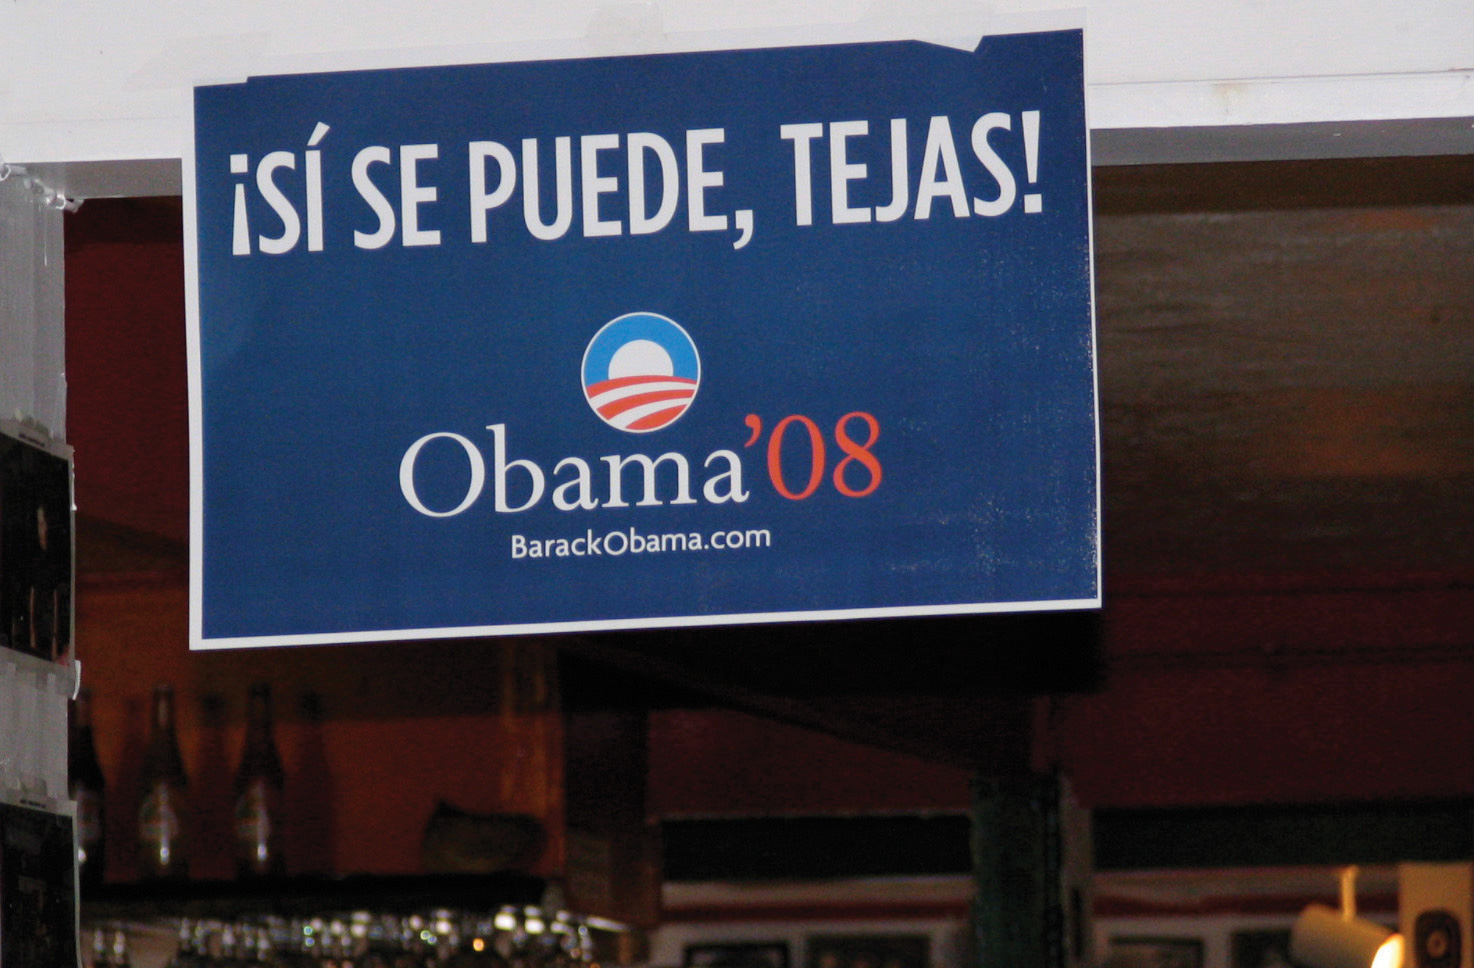 2008 Barak Obama ad catered to the Latino American population. It says: